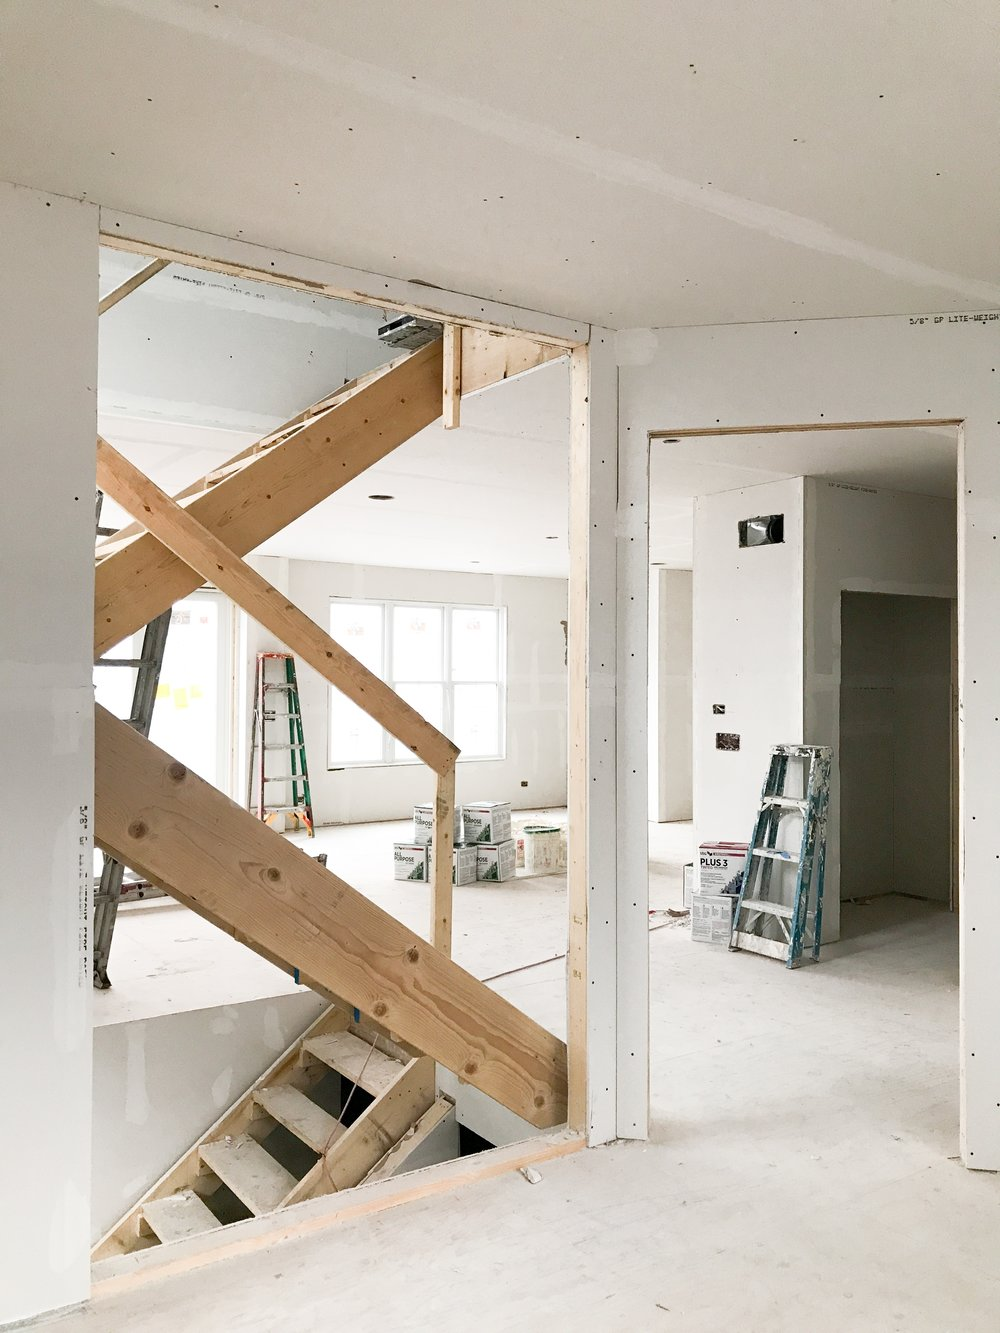 Building A New House - The Home Stretch